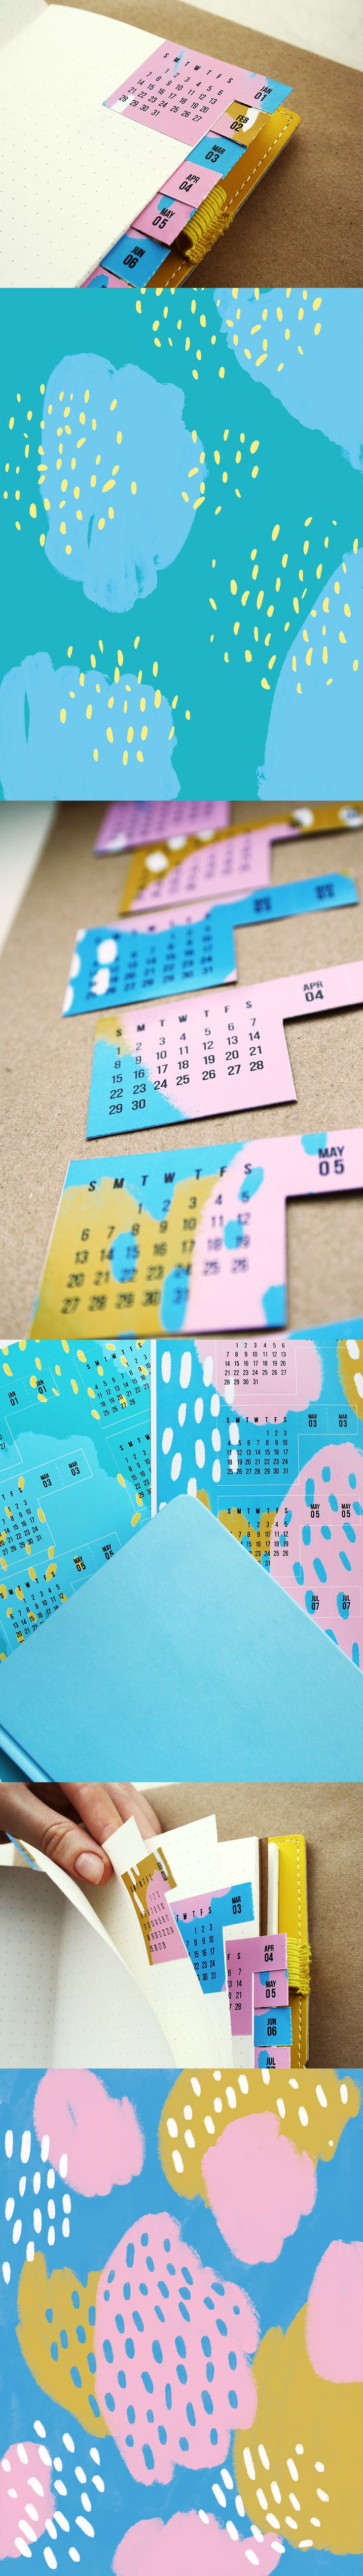 How to keep a current month infront of your eyes  #DIY #plannerstickers #calendar #calendarsticker #anniesprintcrafts #etsy #printables #downloadandprint #download